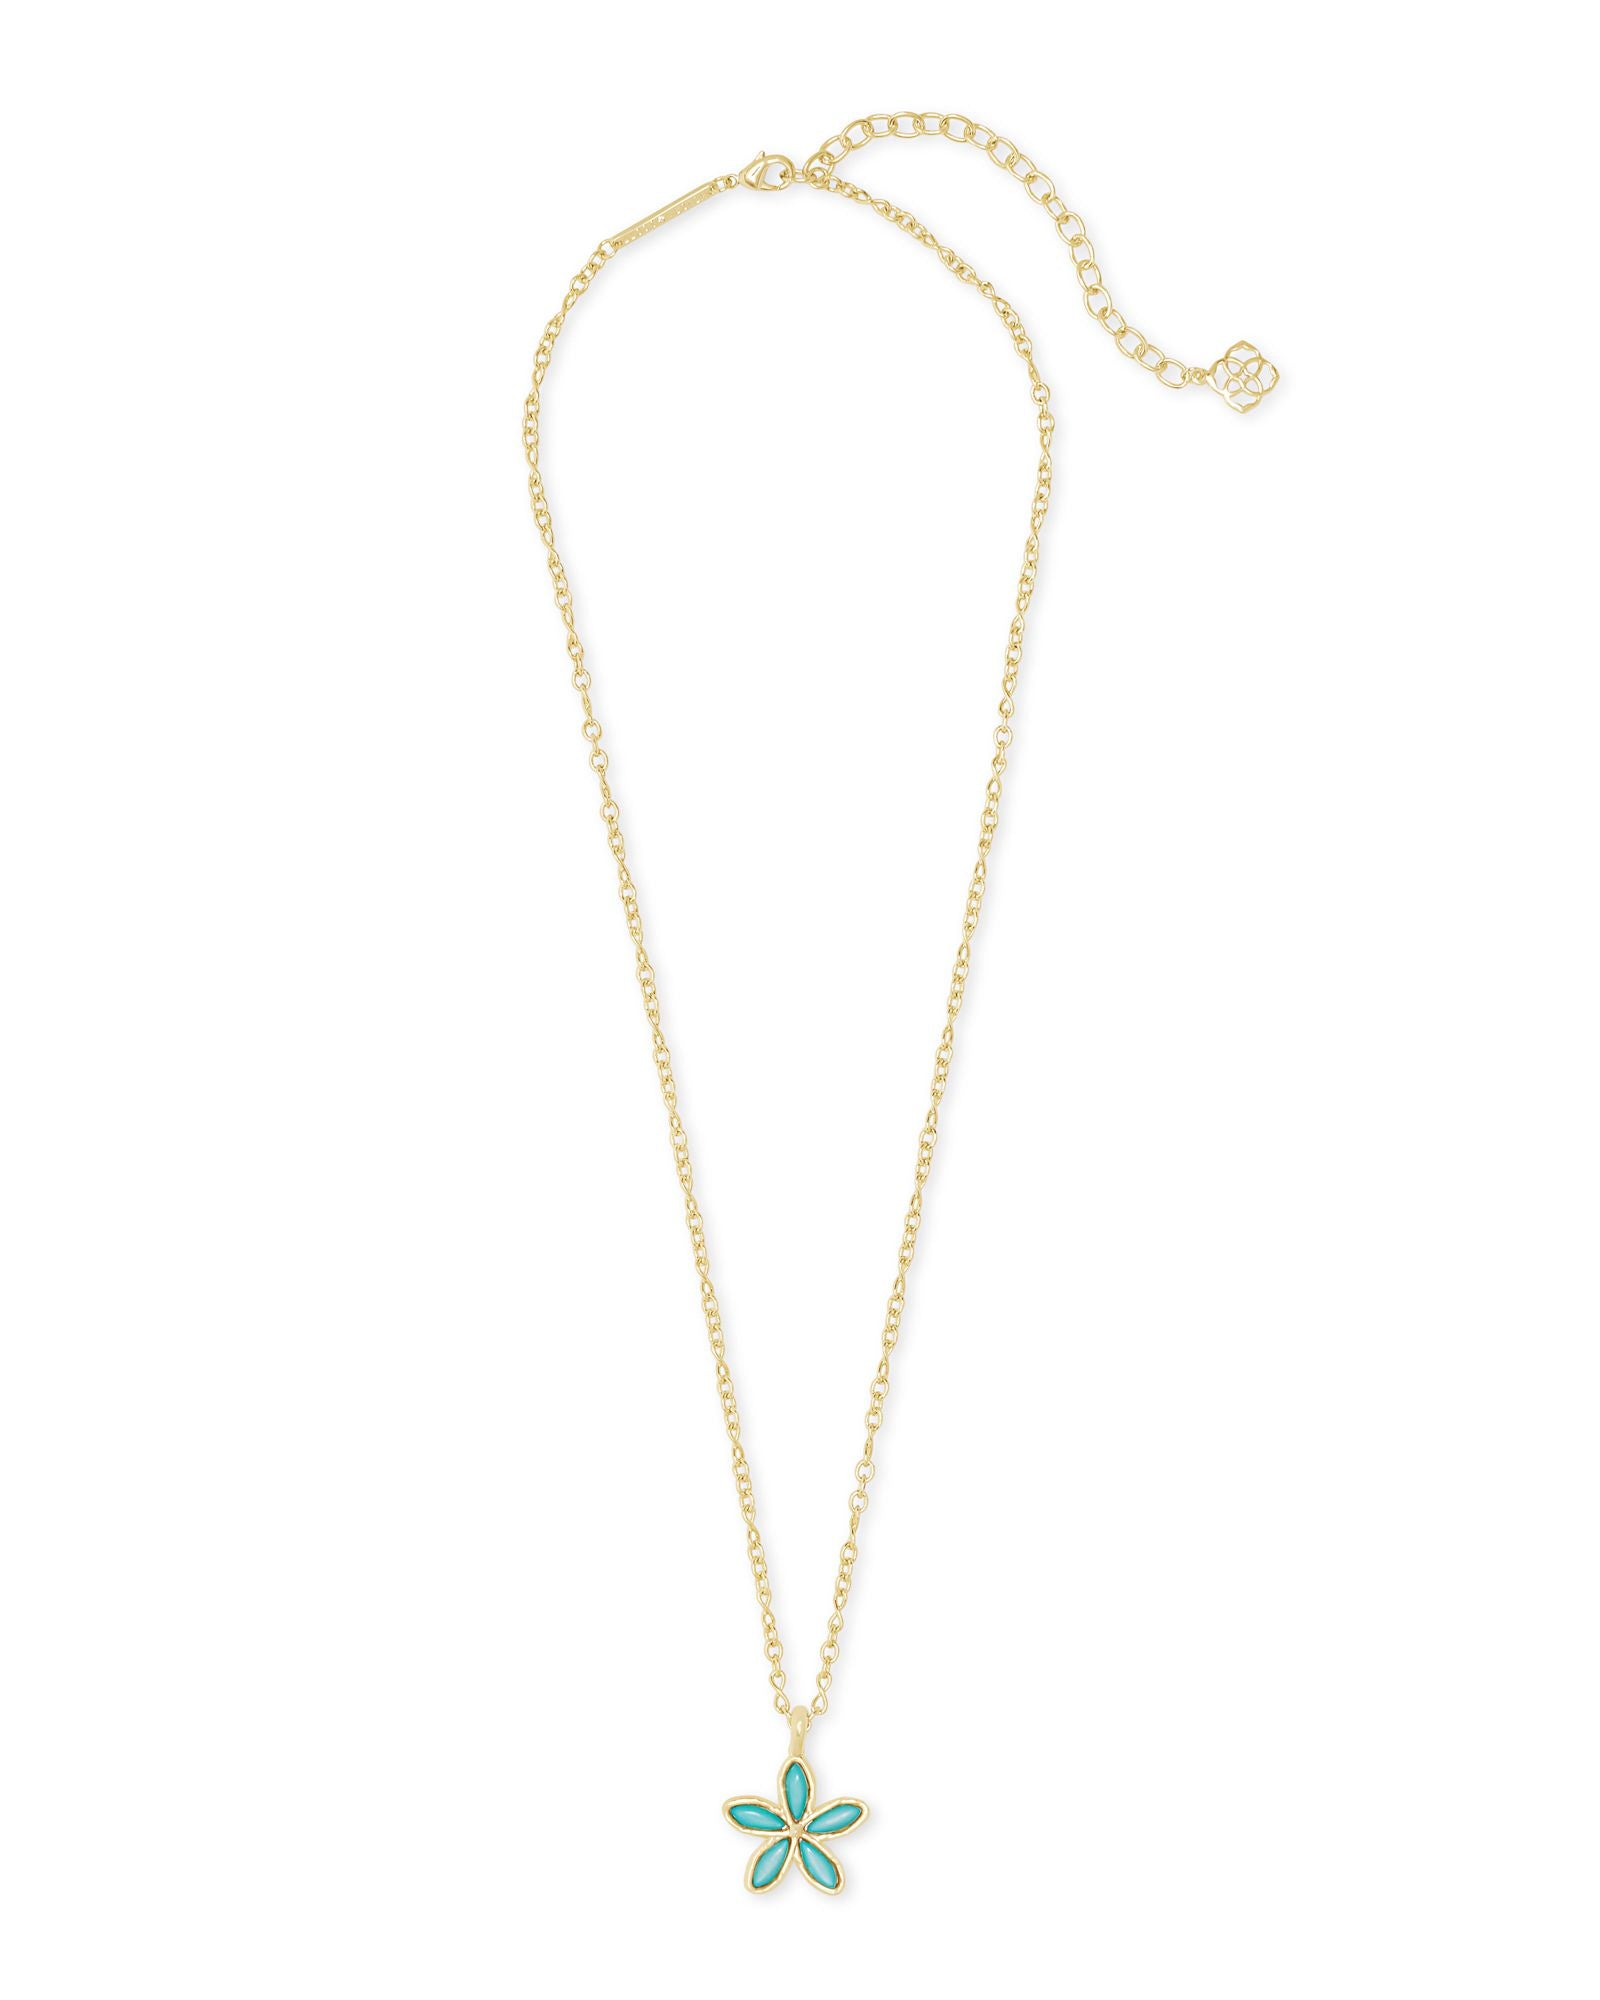 Kyla Flower Necklace in Gold Teal Mother of Pearl